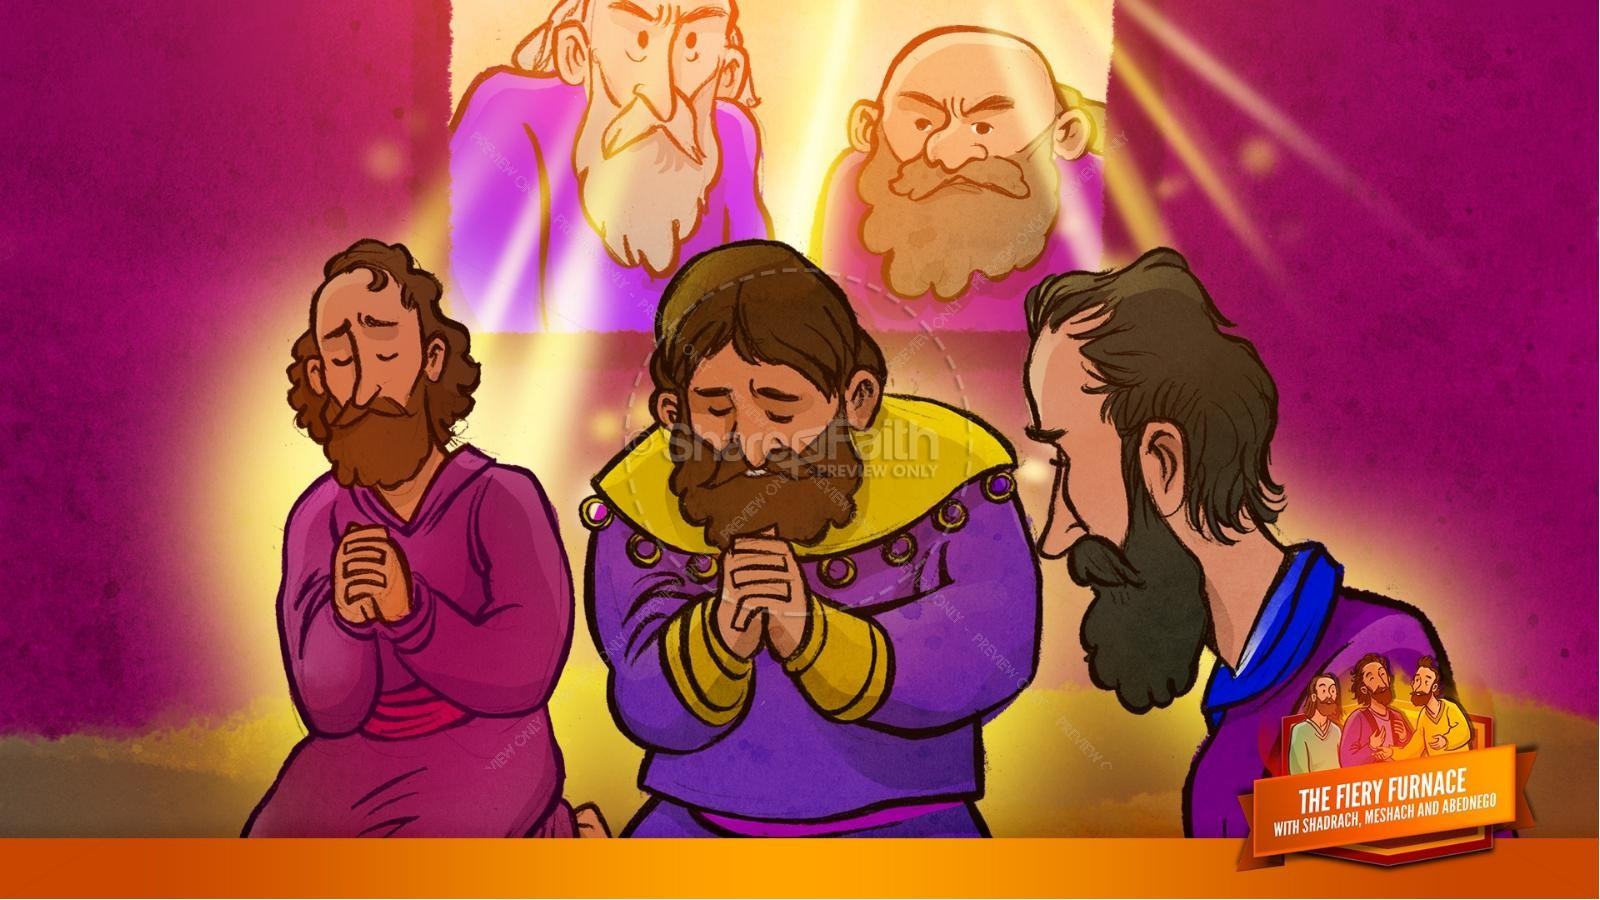 The Fiery Furnace with Shadrach, Meshach and Abednego Kids Bible Story | slide 27